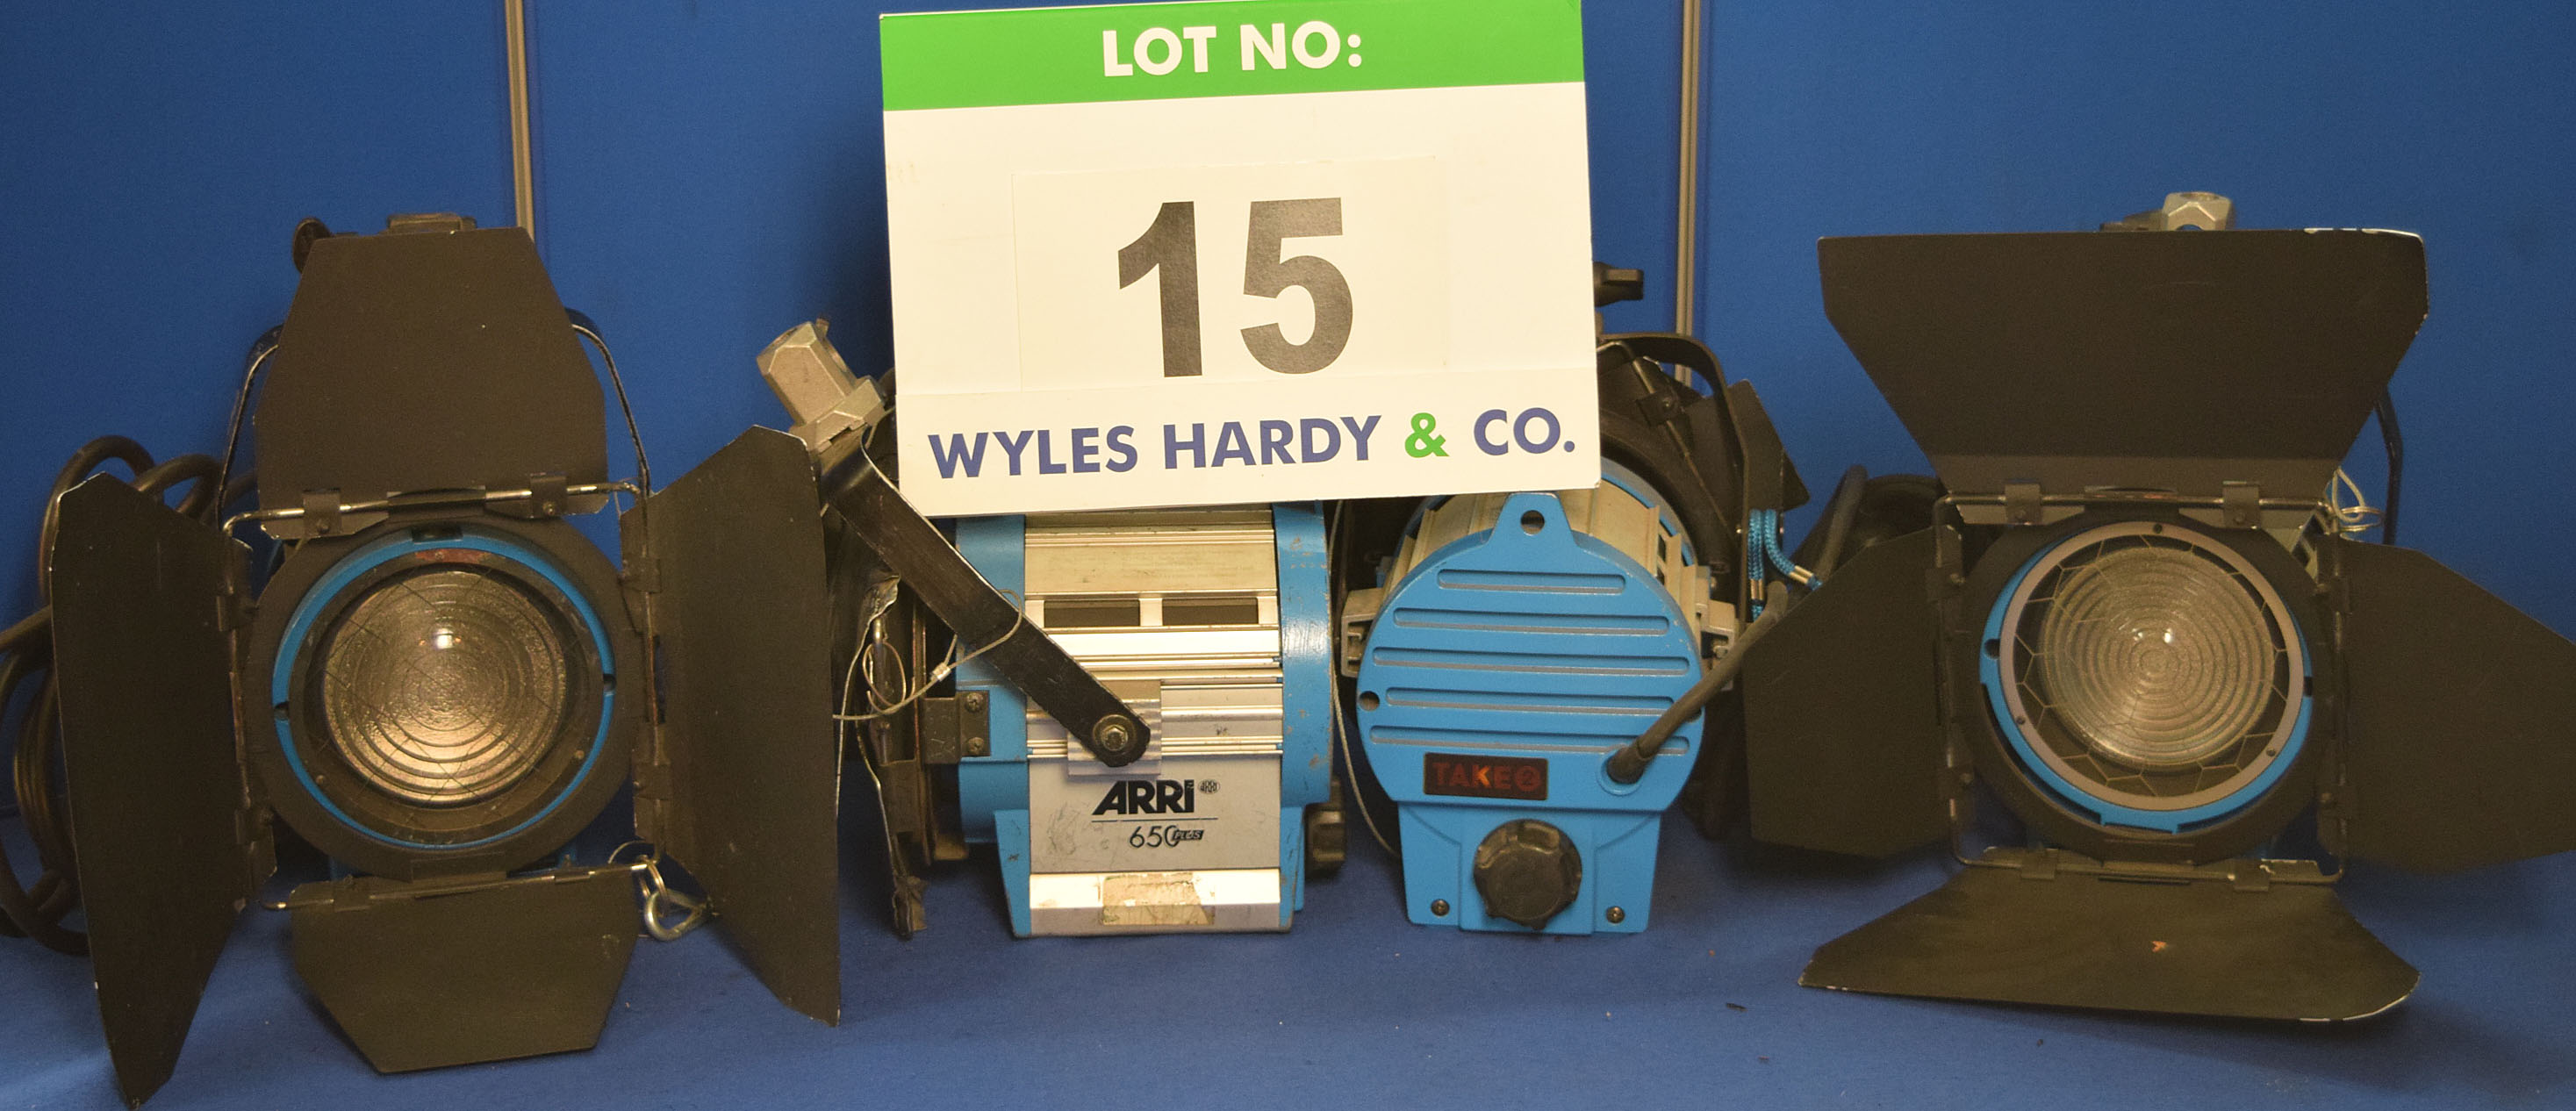 Lot 15 - Four ARRI 650 Plus 650W Lights each with fitted Barn Doors, Stirrup Mount and Switched Power Feed